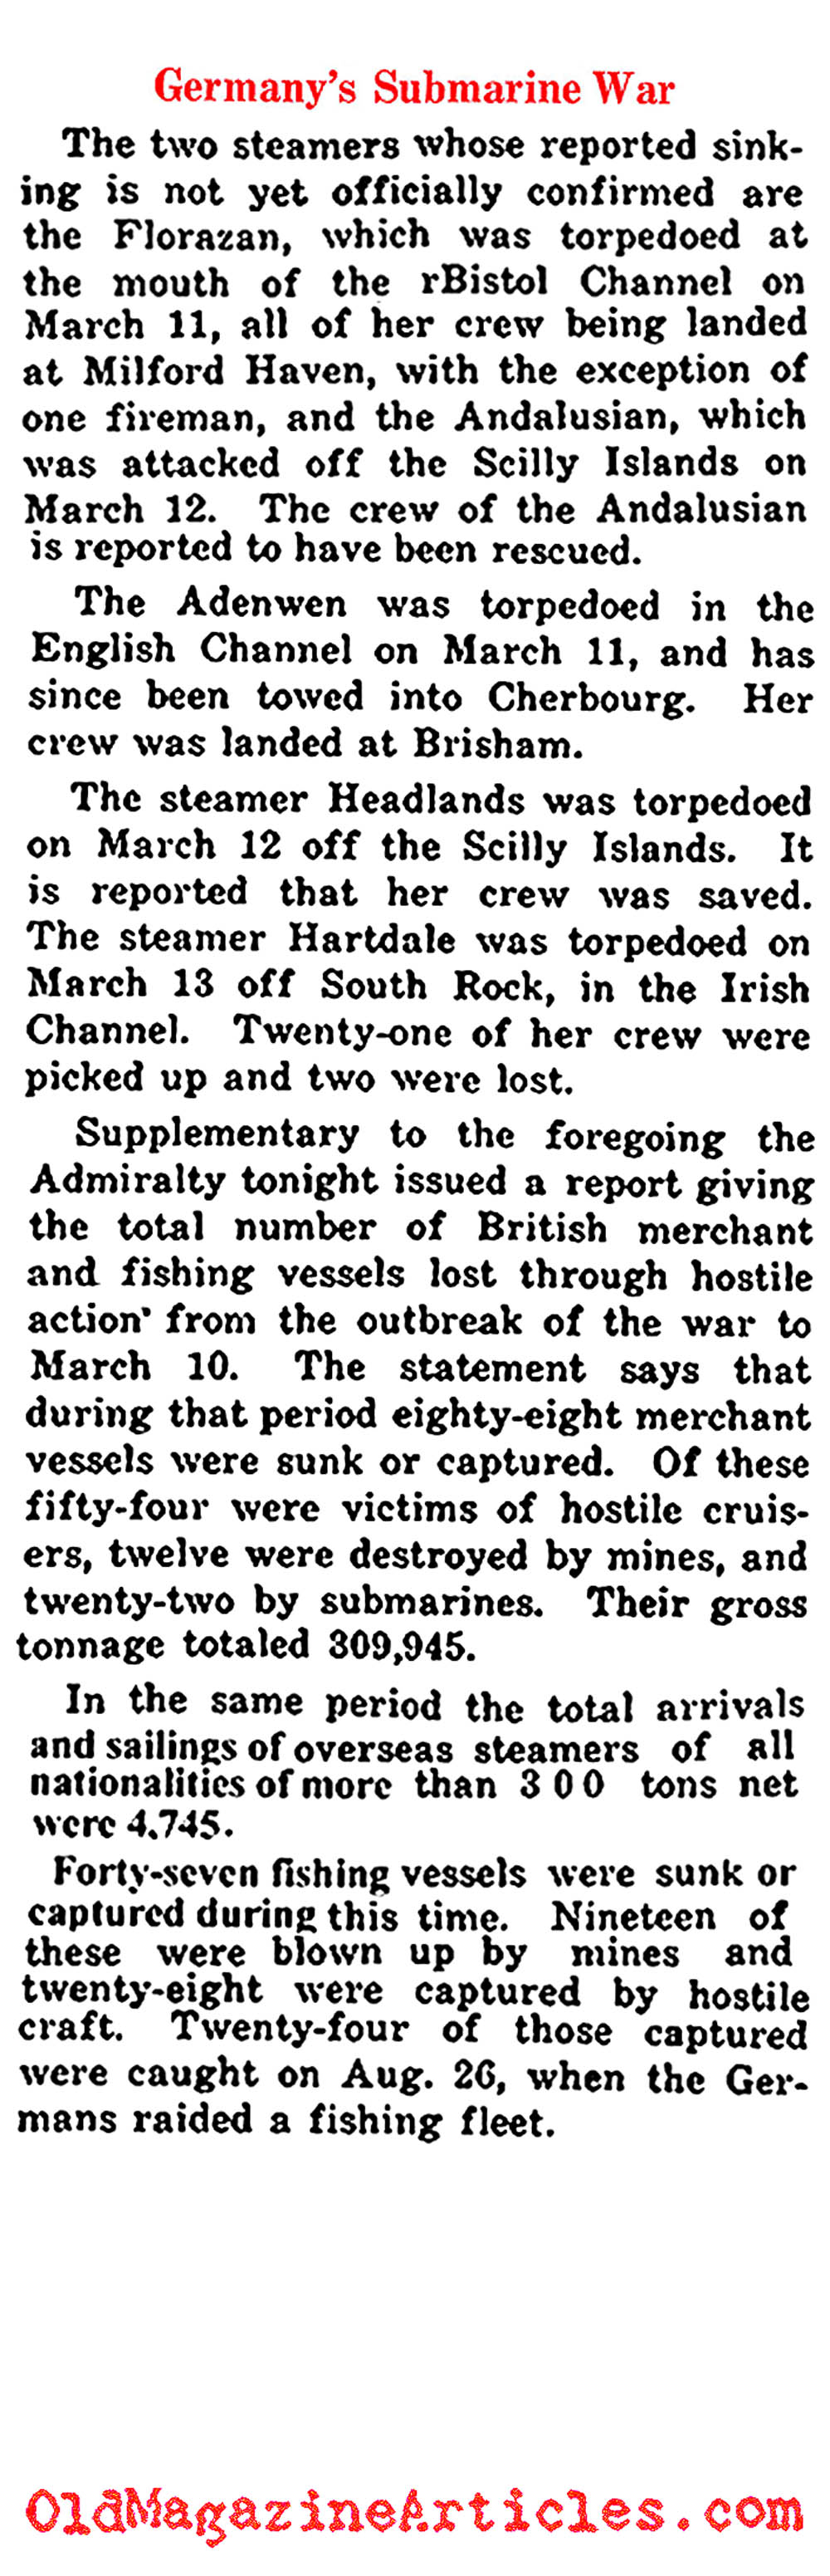 Submarine Warfare: The First Seven Months (New York Times, 1915)